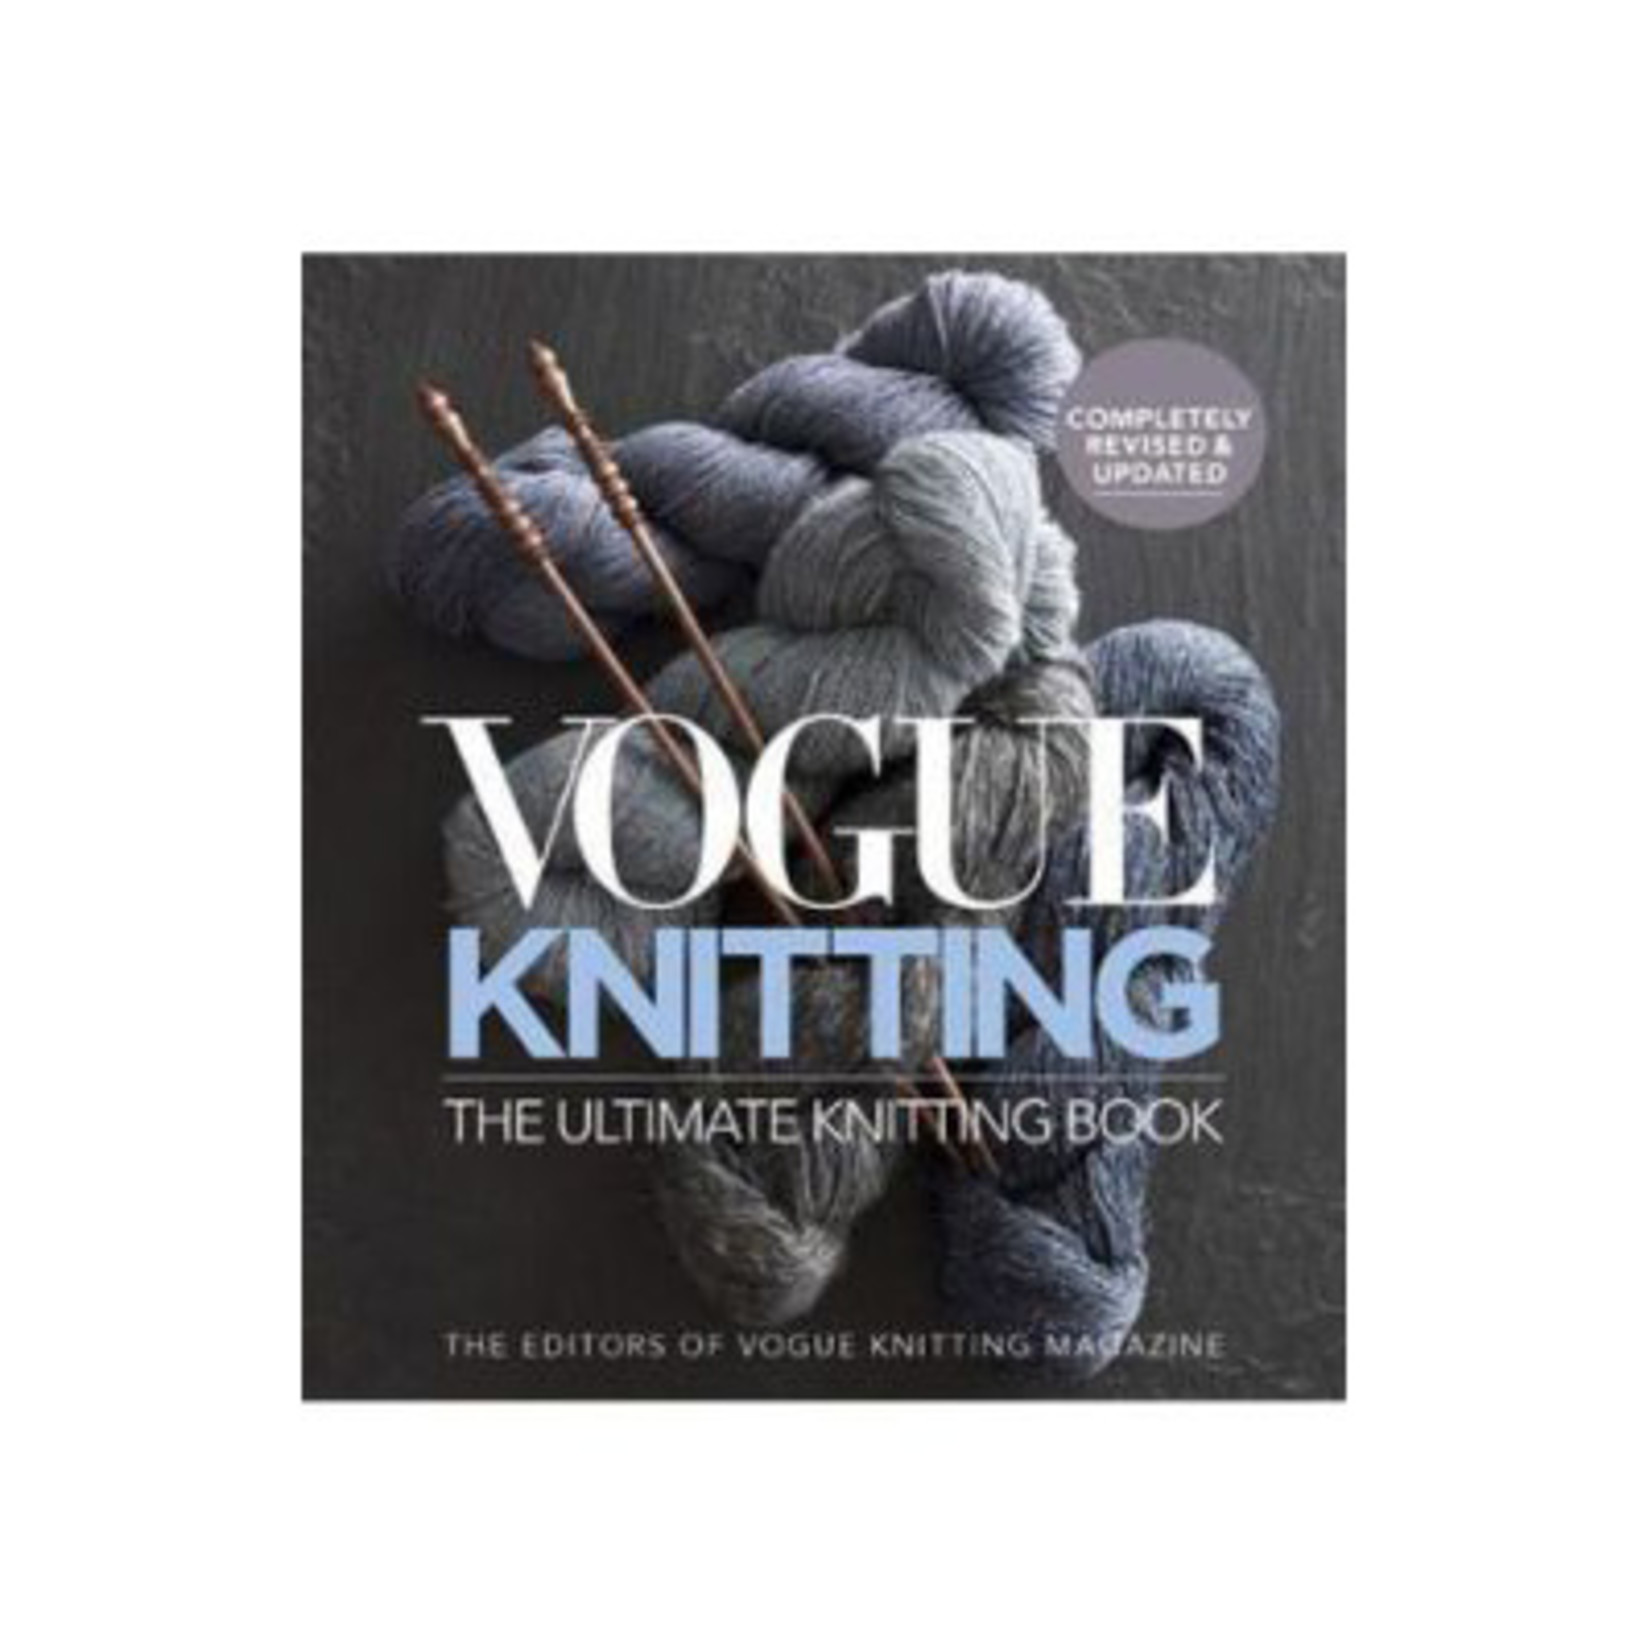 Vogue Knitting Vogue Knitting: The Ultimate Knitting Book Revised